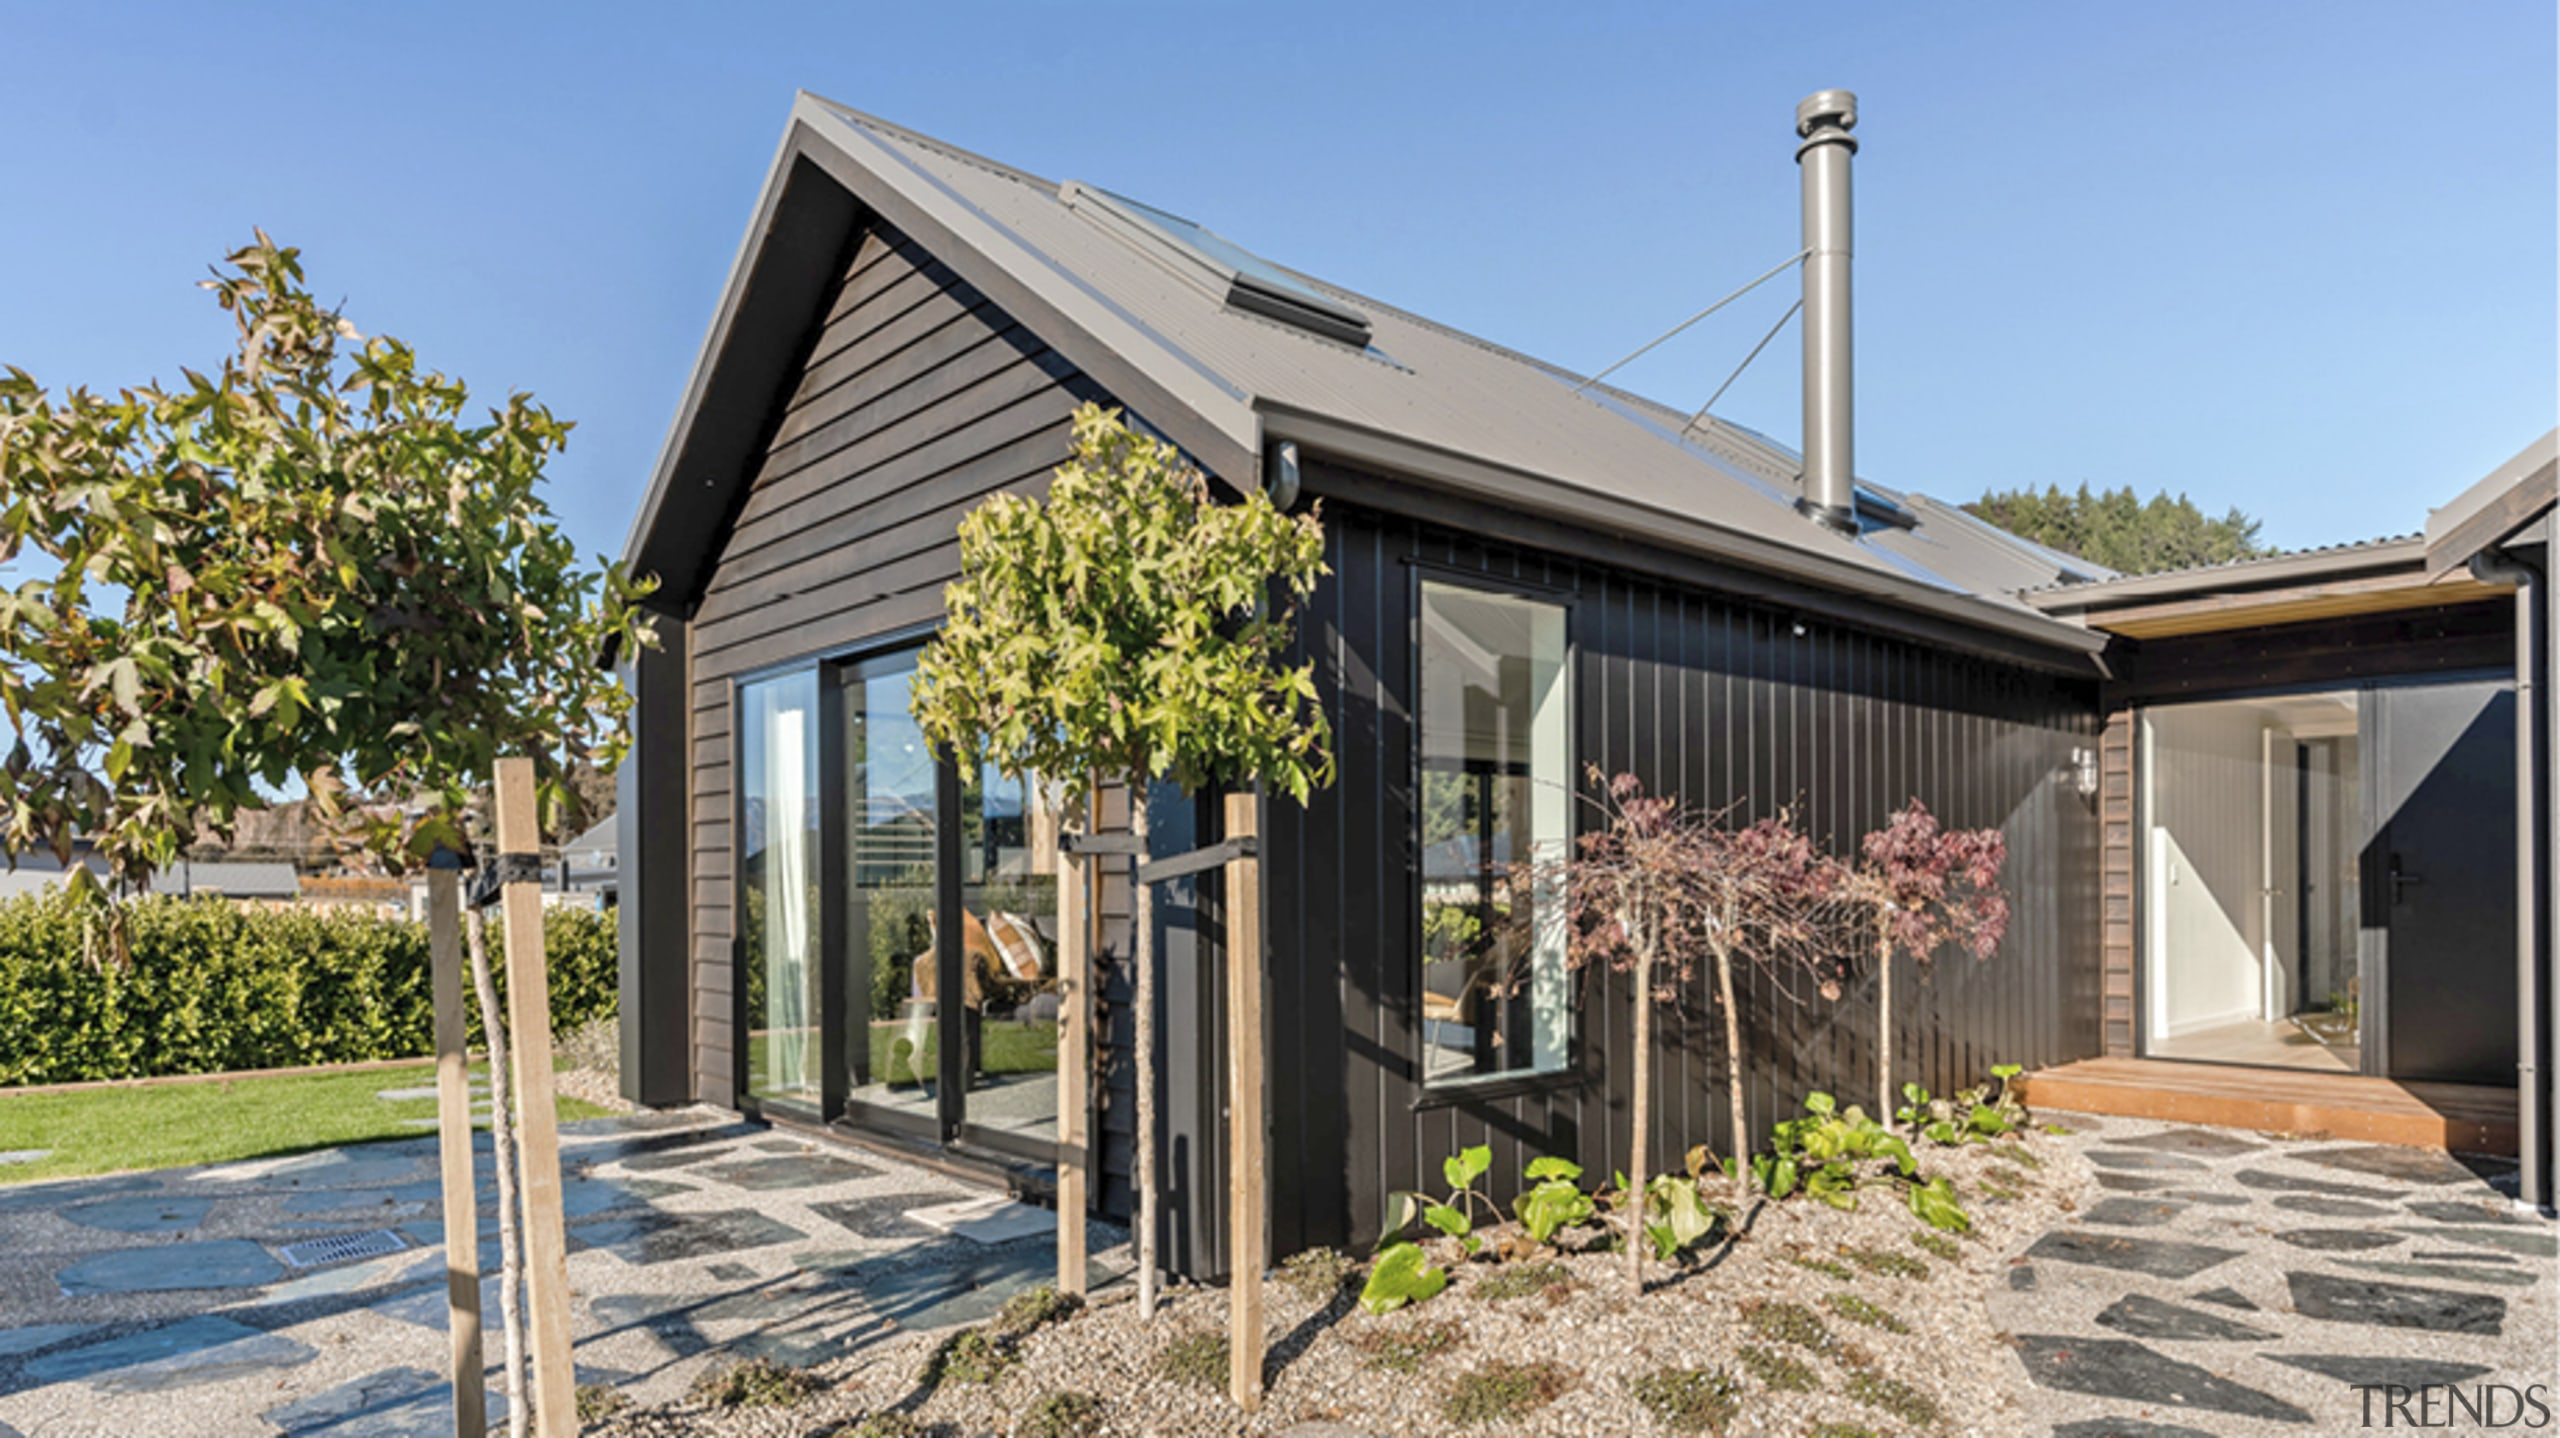 A character paved approach leads to the home's